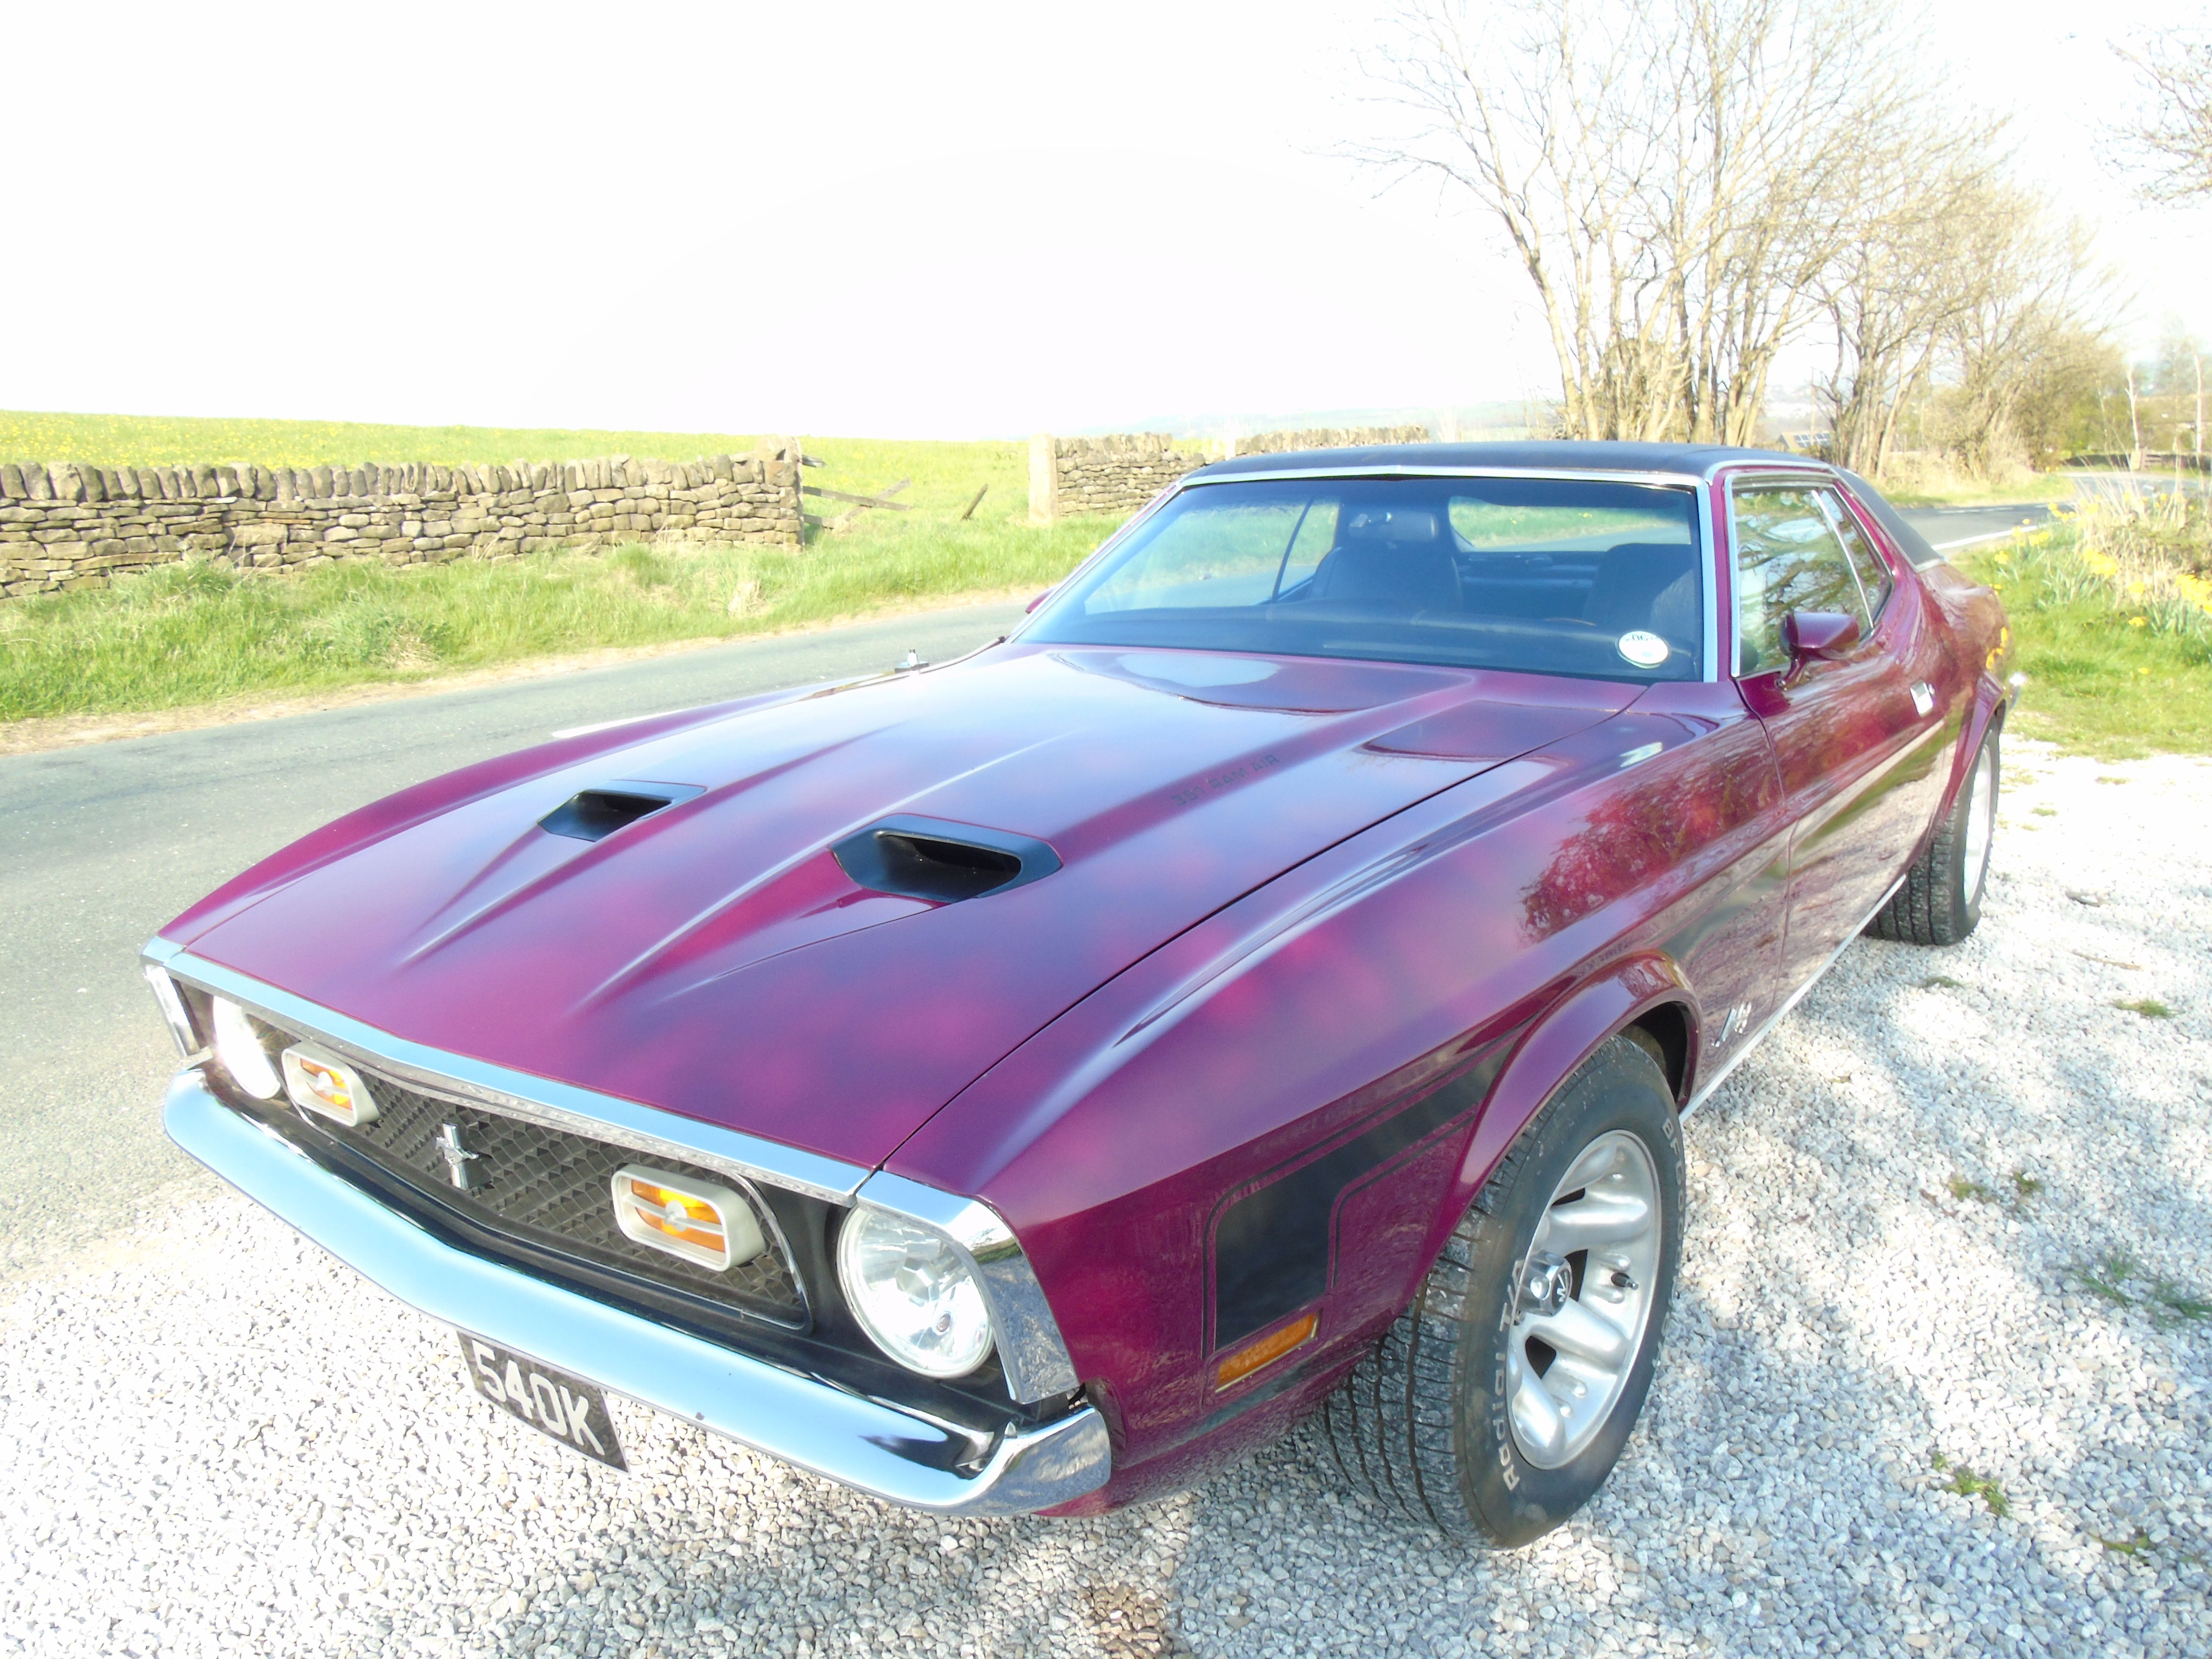 1972 mustang grande with mach 1 grill and decals